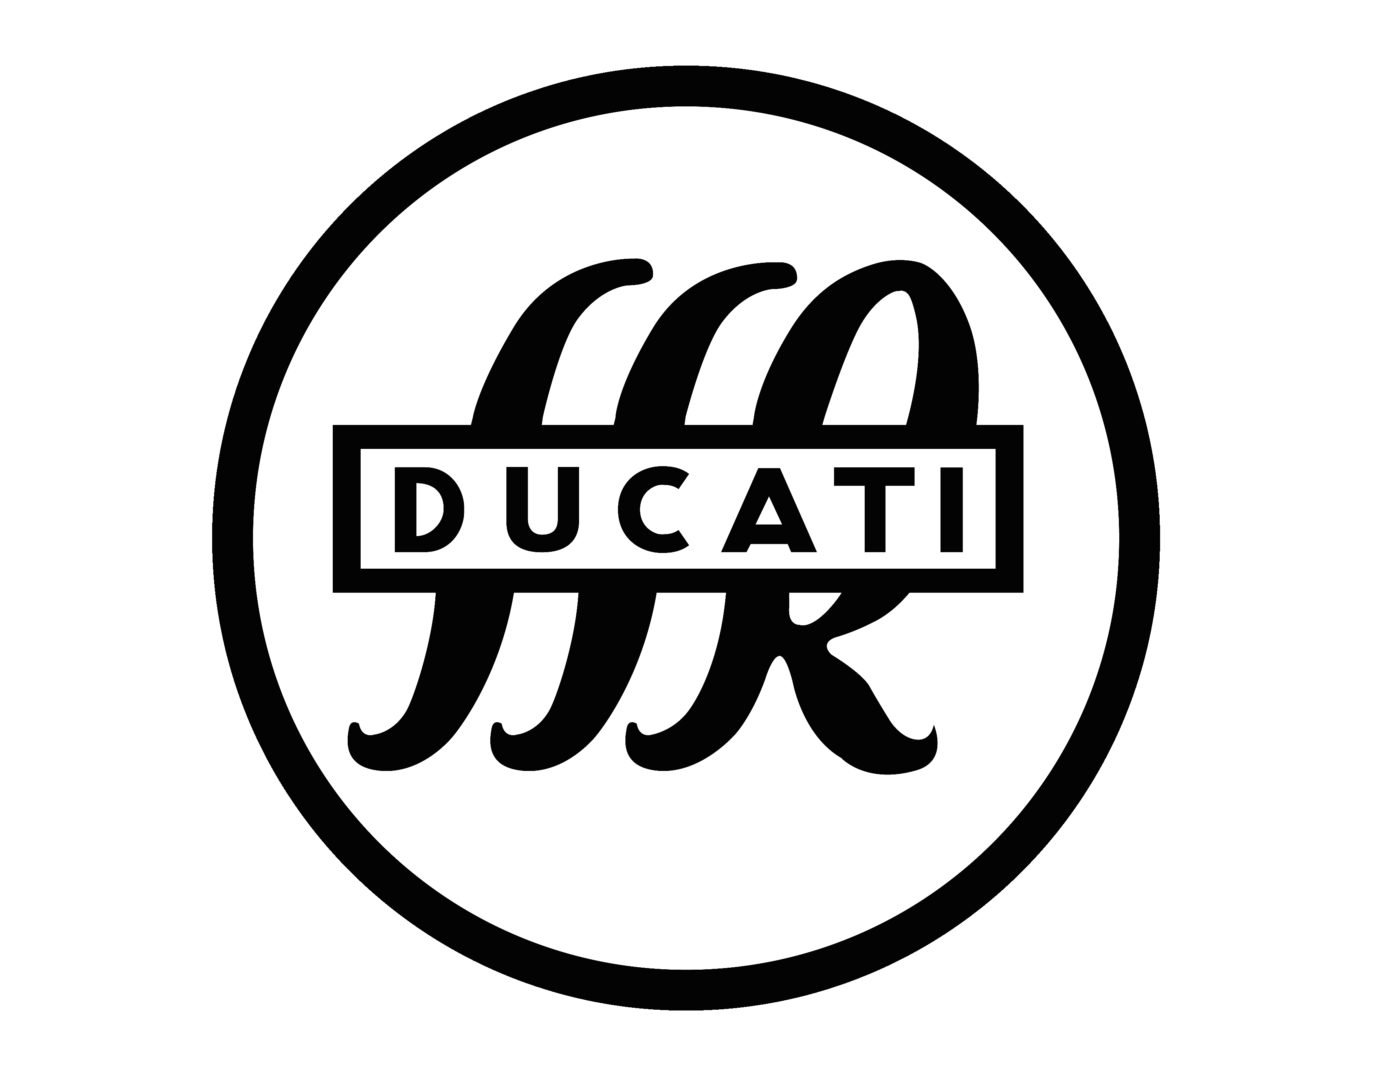 Ducati motorcycle logo history and Meaning, bike emblem